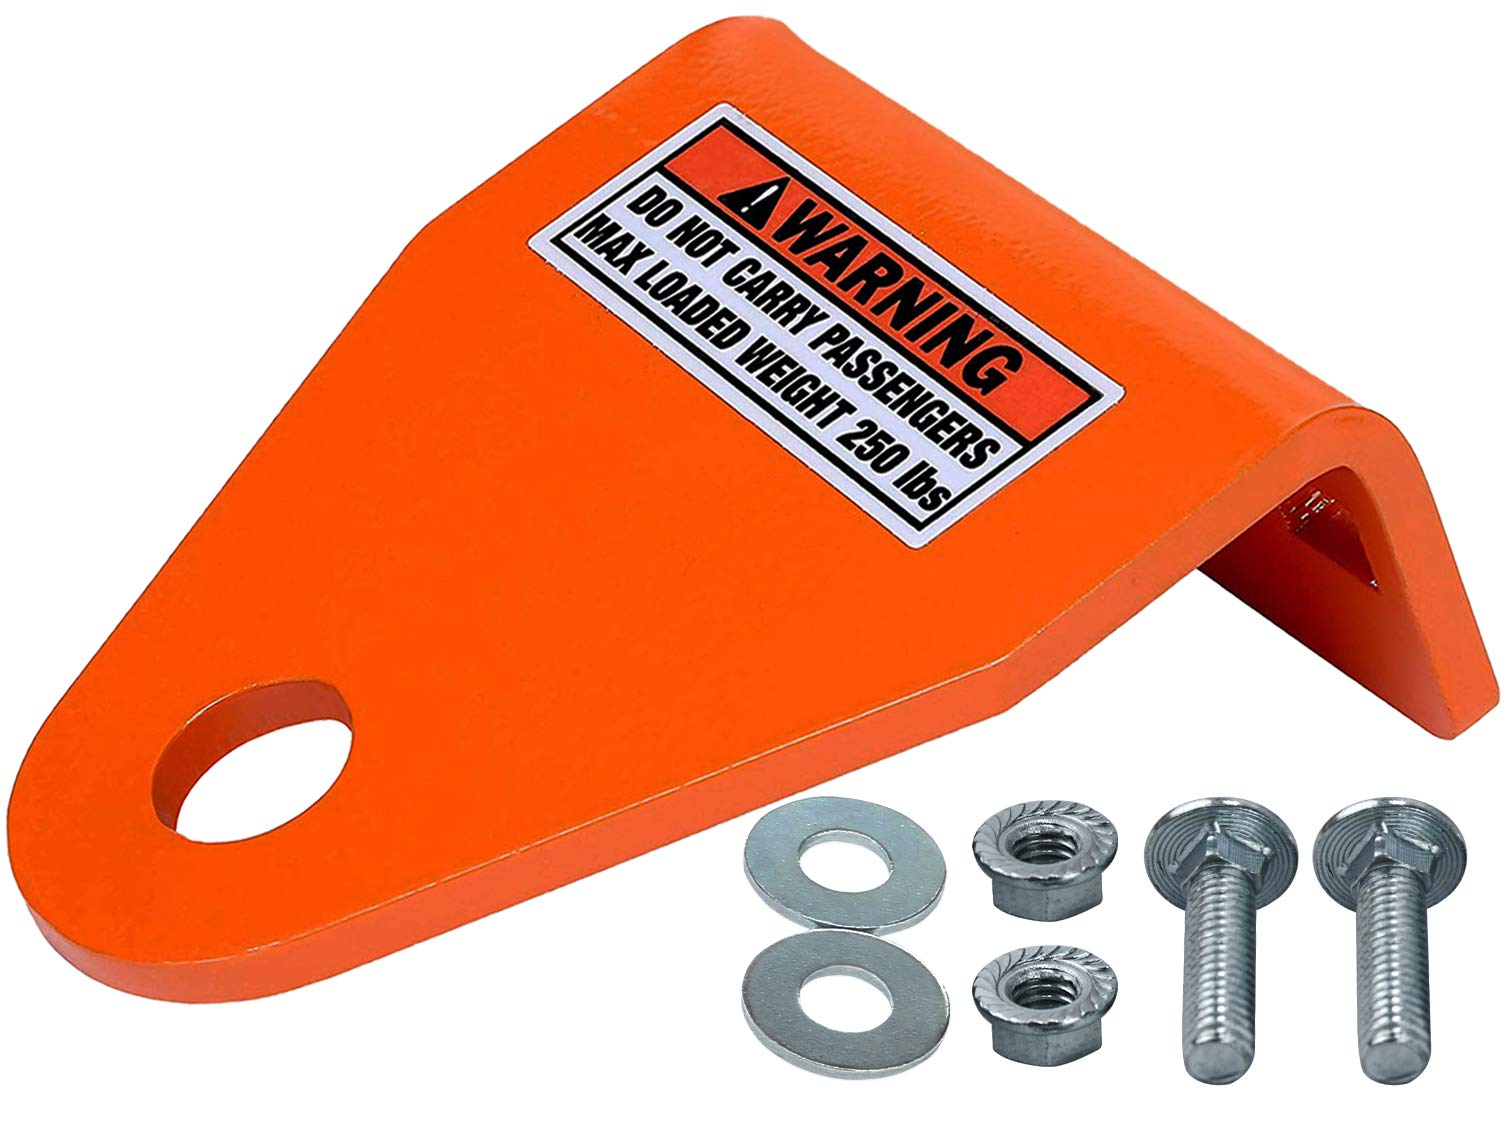 Noa Store Trailer Hitch for Scag Turf Tiger, 2015 Freedom Z & New Liberty Z Riding Lawn Mower by Noa Store